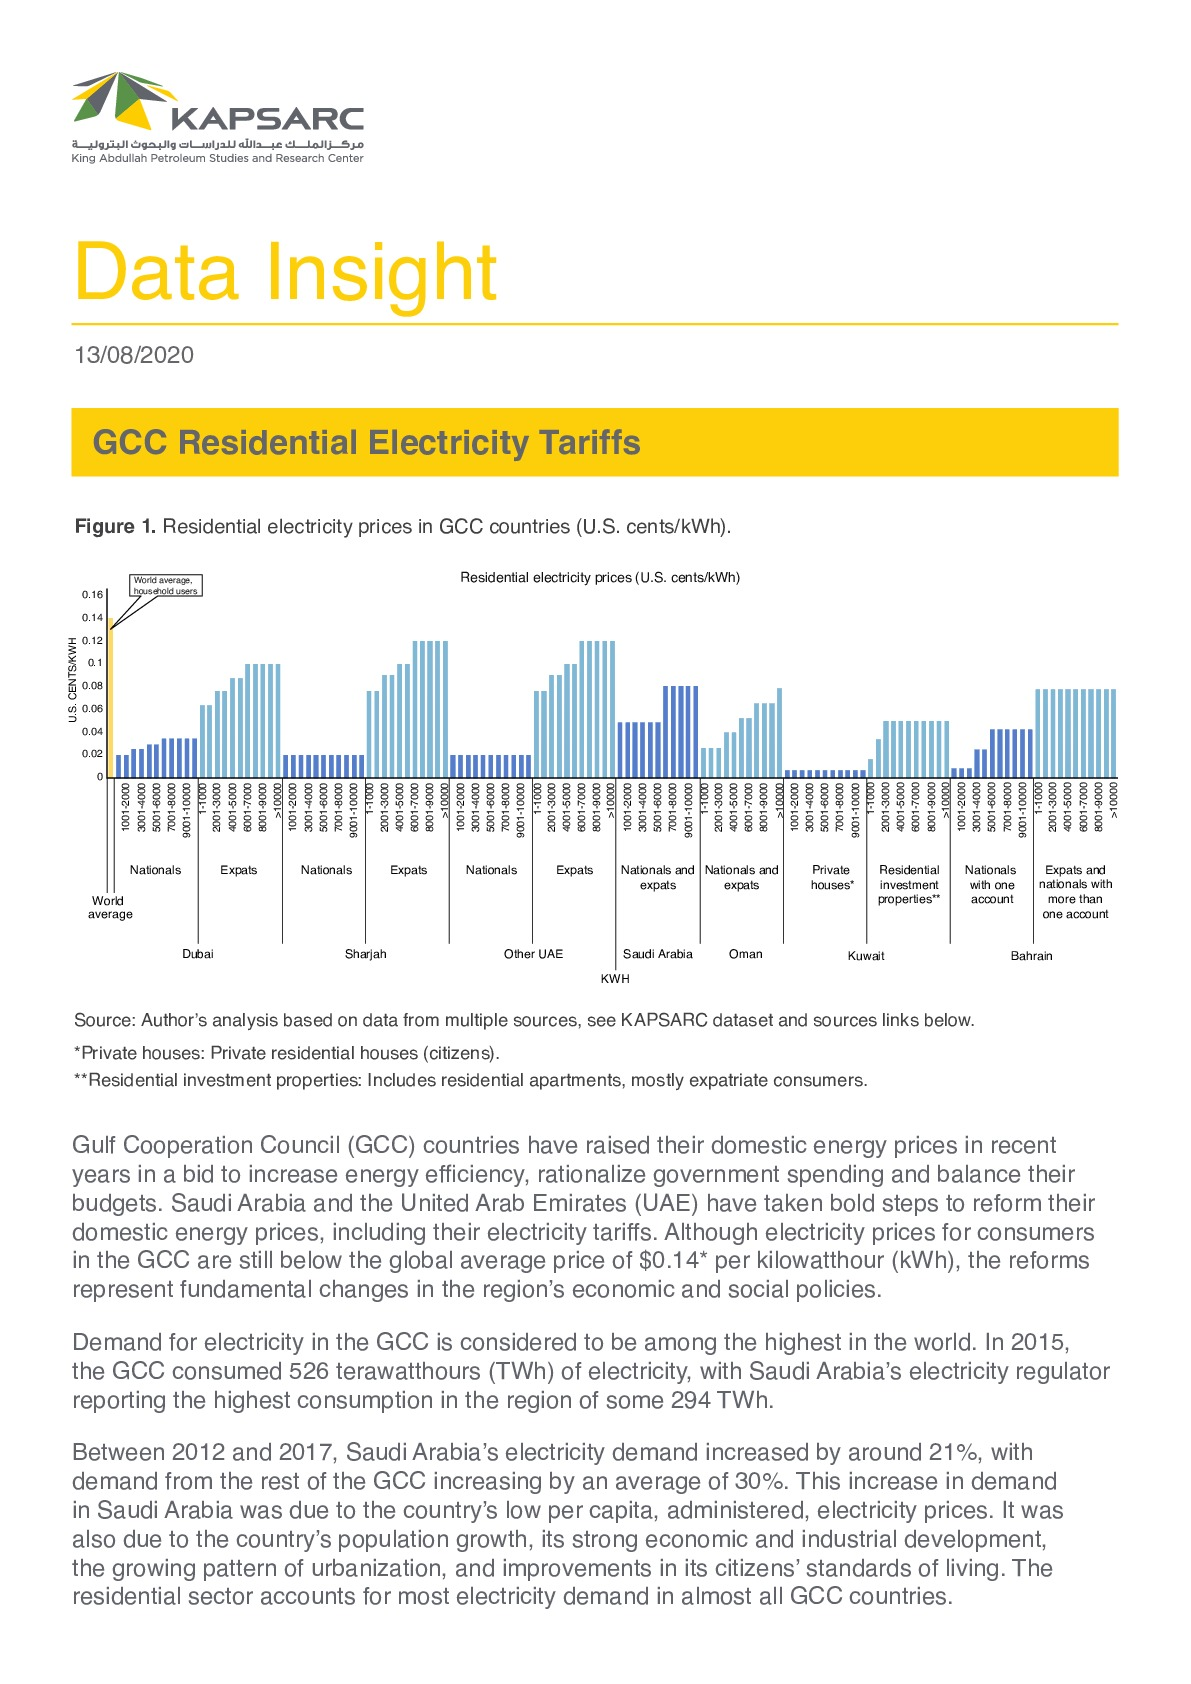 GCC Residential Electricity Tariffs